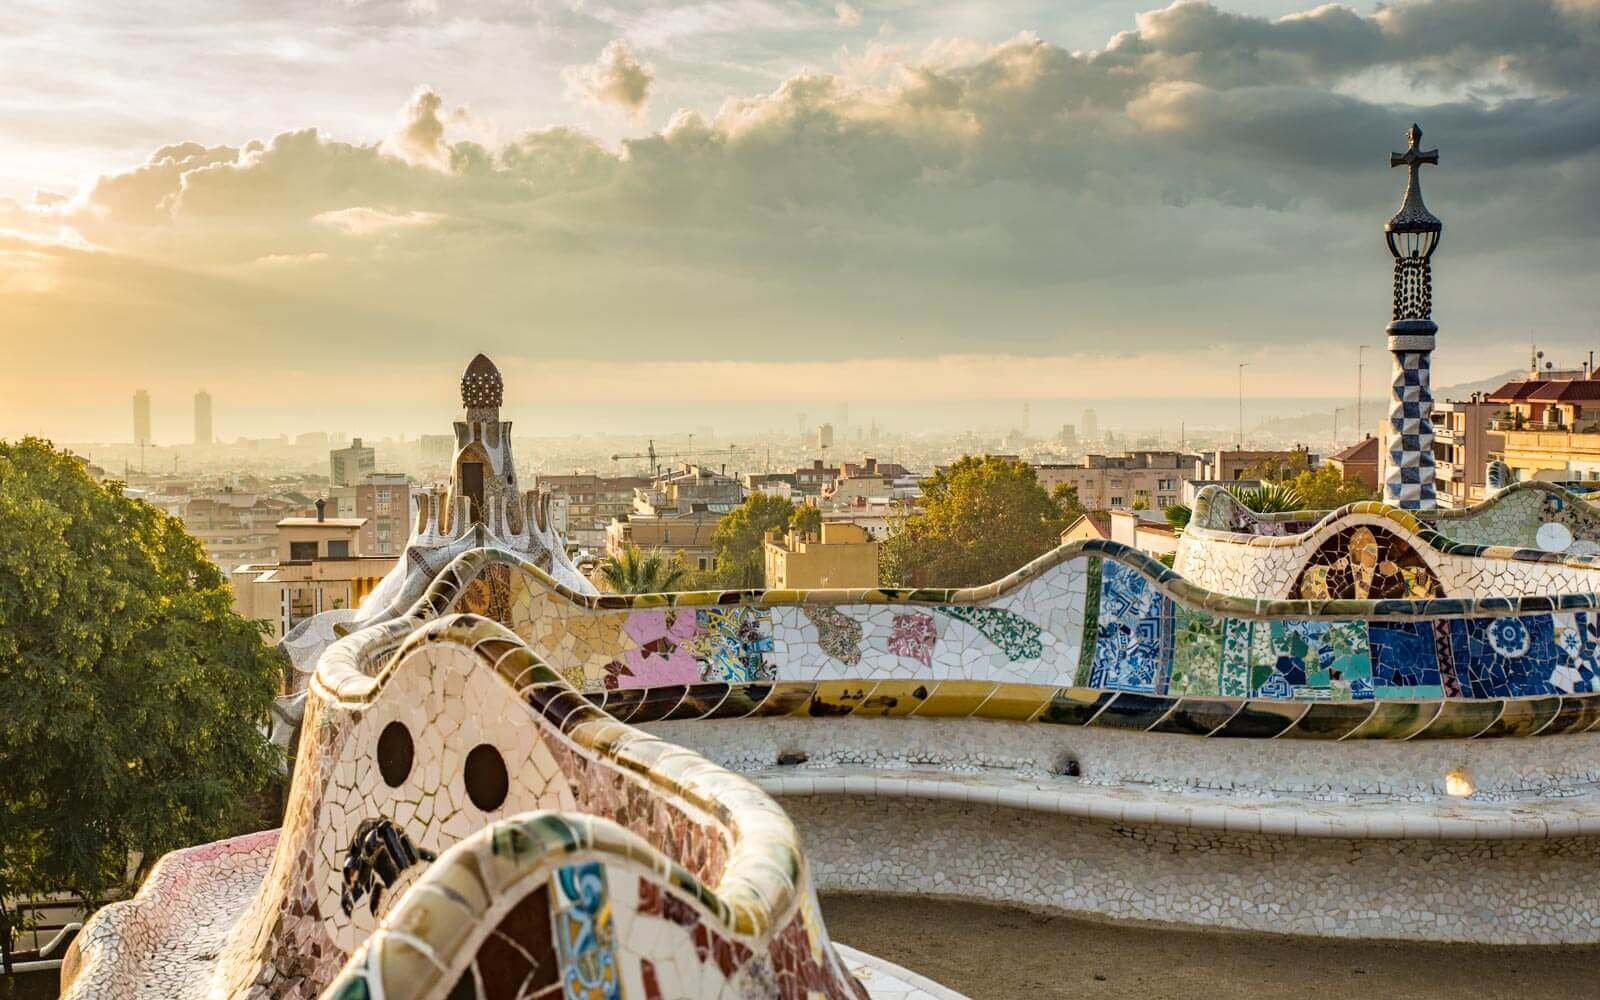 barcelona weather system moving in on the city from park guell